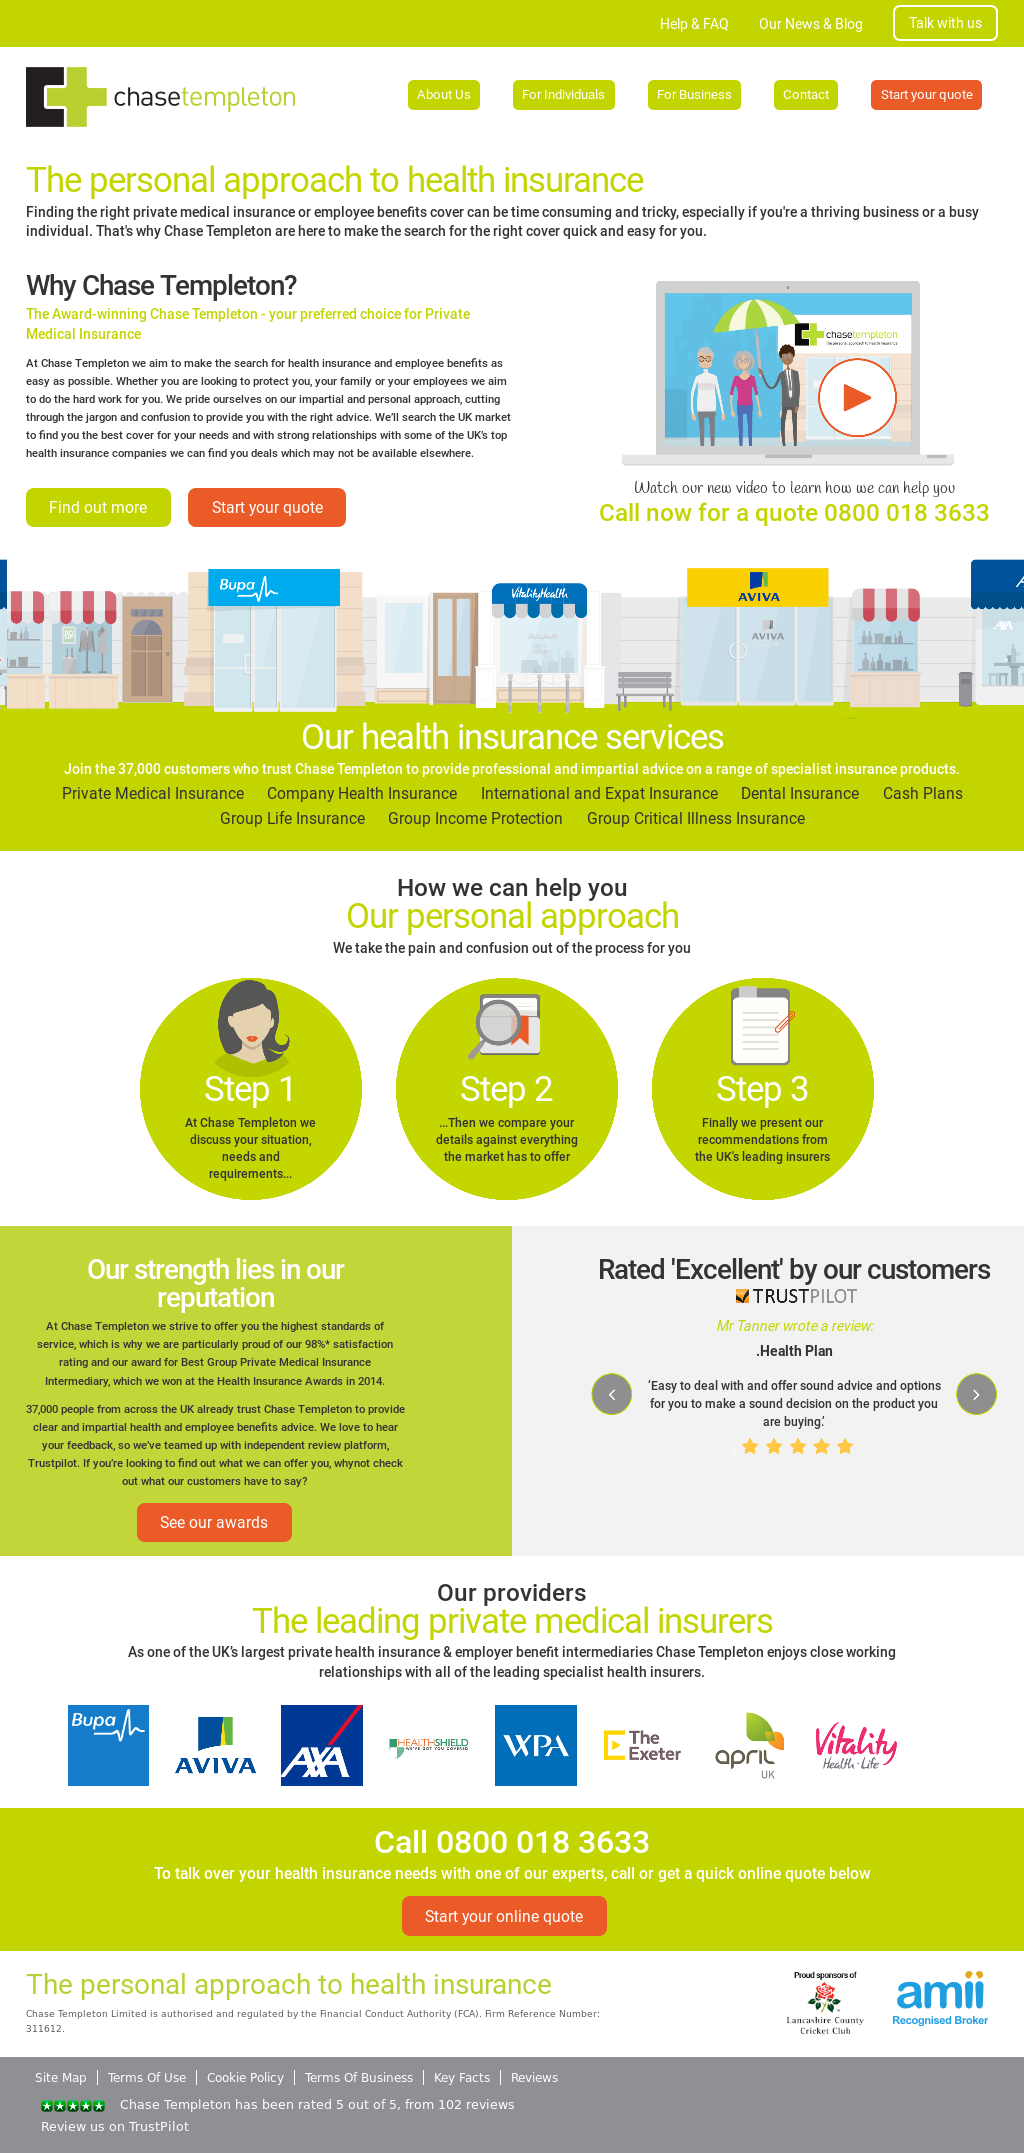 Insurance company CSG: feedback from employees and customers 37